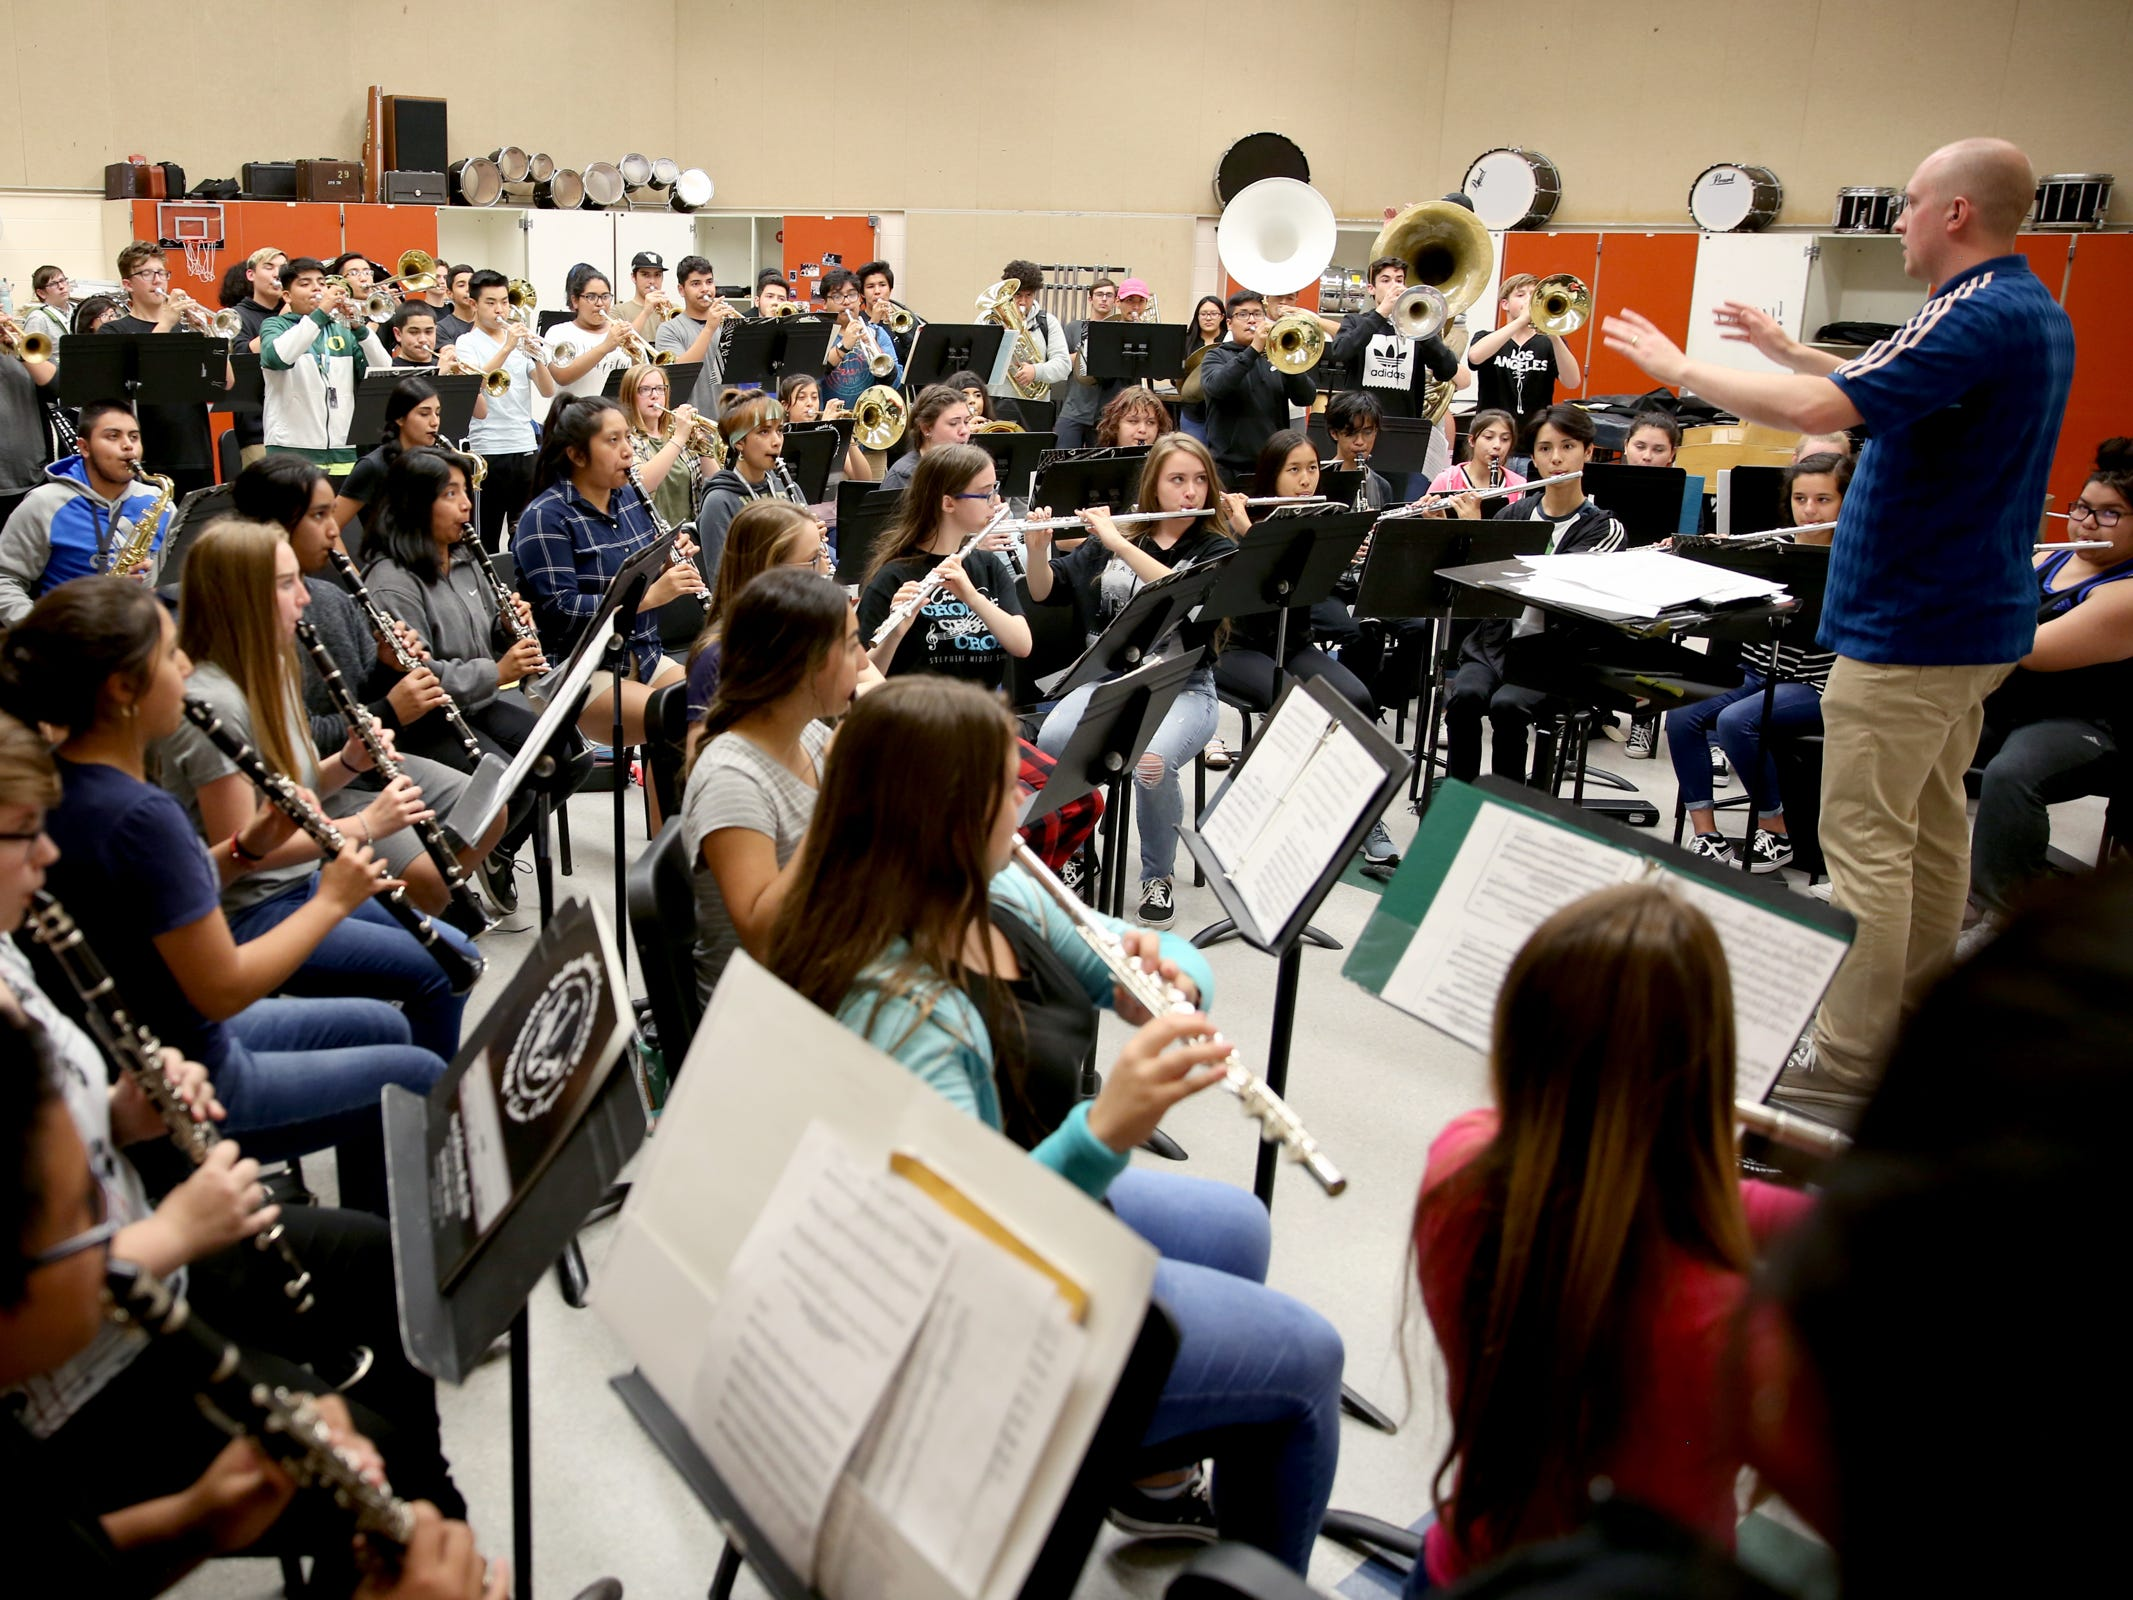 The McKay marching band rehearses music inside at McKay High School in Salem on Thursday, Sep. 27, 2018.